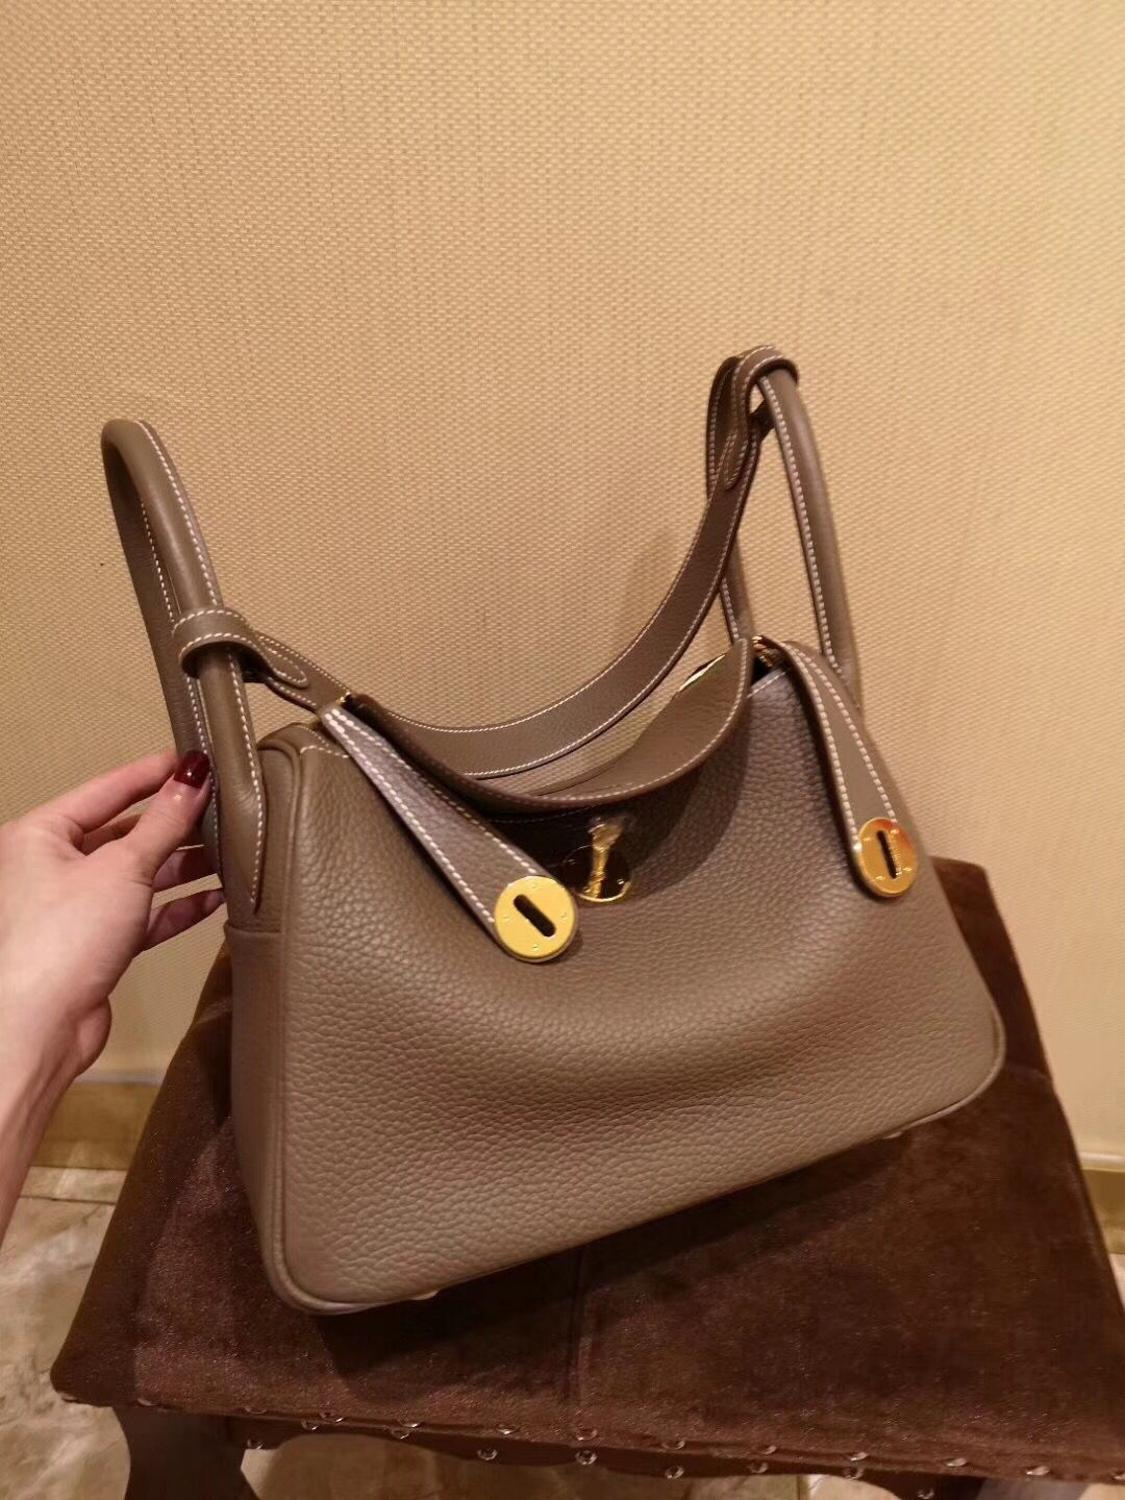 Women Bags LIND Crossbody-Bags Designer 100%Genuine-Leather Famous-Brand for Runway Calf